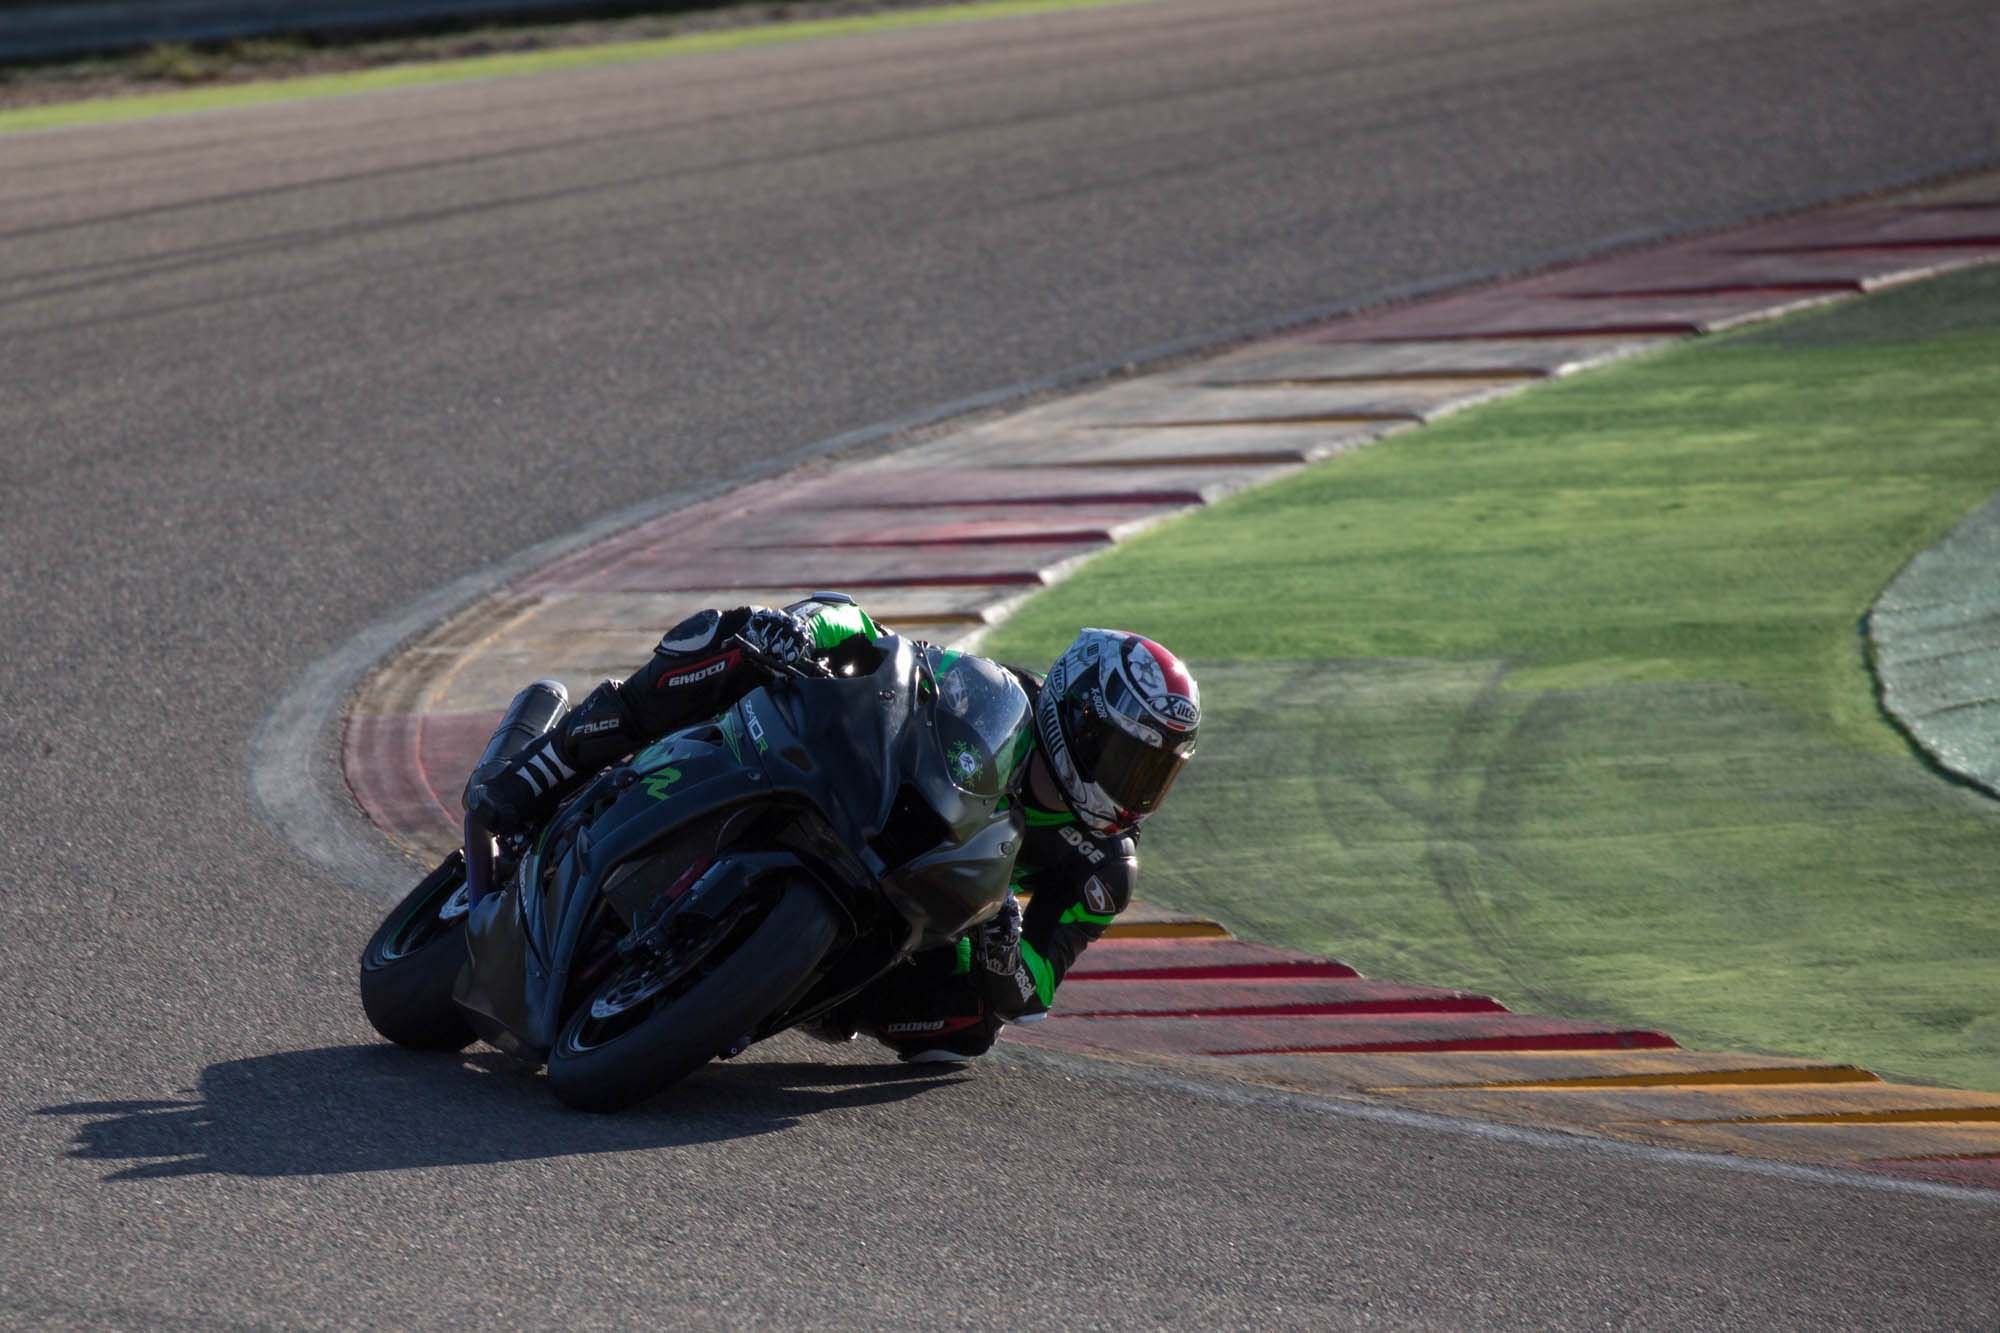 Photos from the WSBK Aragon Test by Steve English